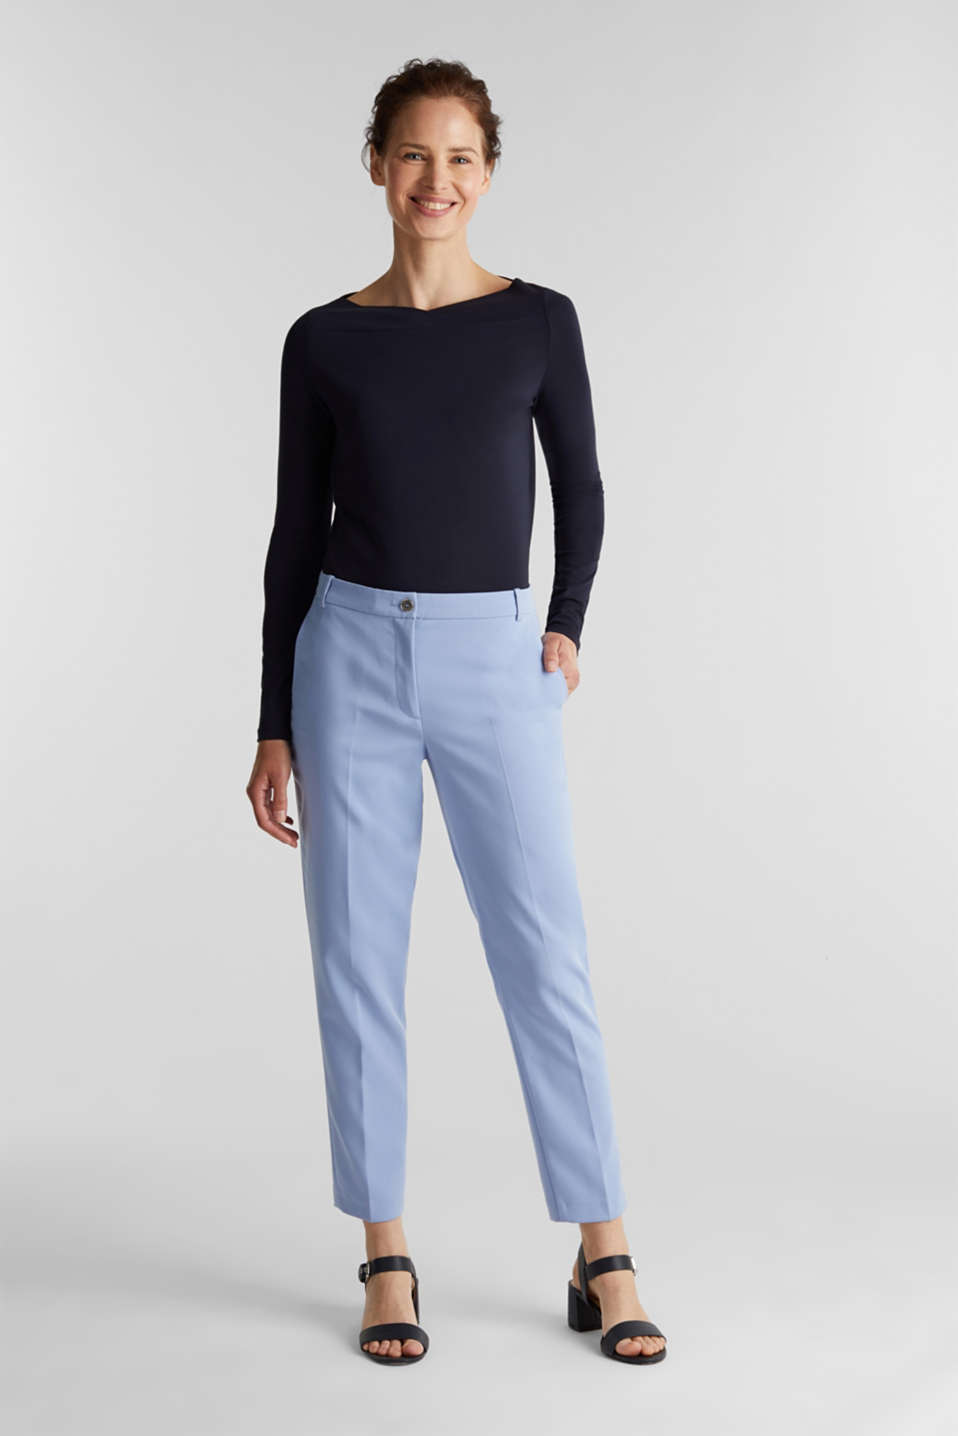 Stretch long sleeve top with a modern neckline, NAVY, detail image number 1